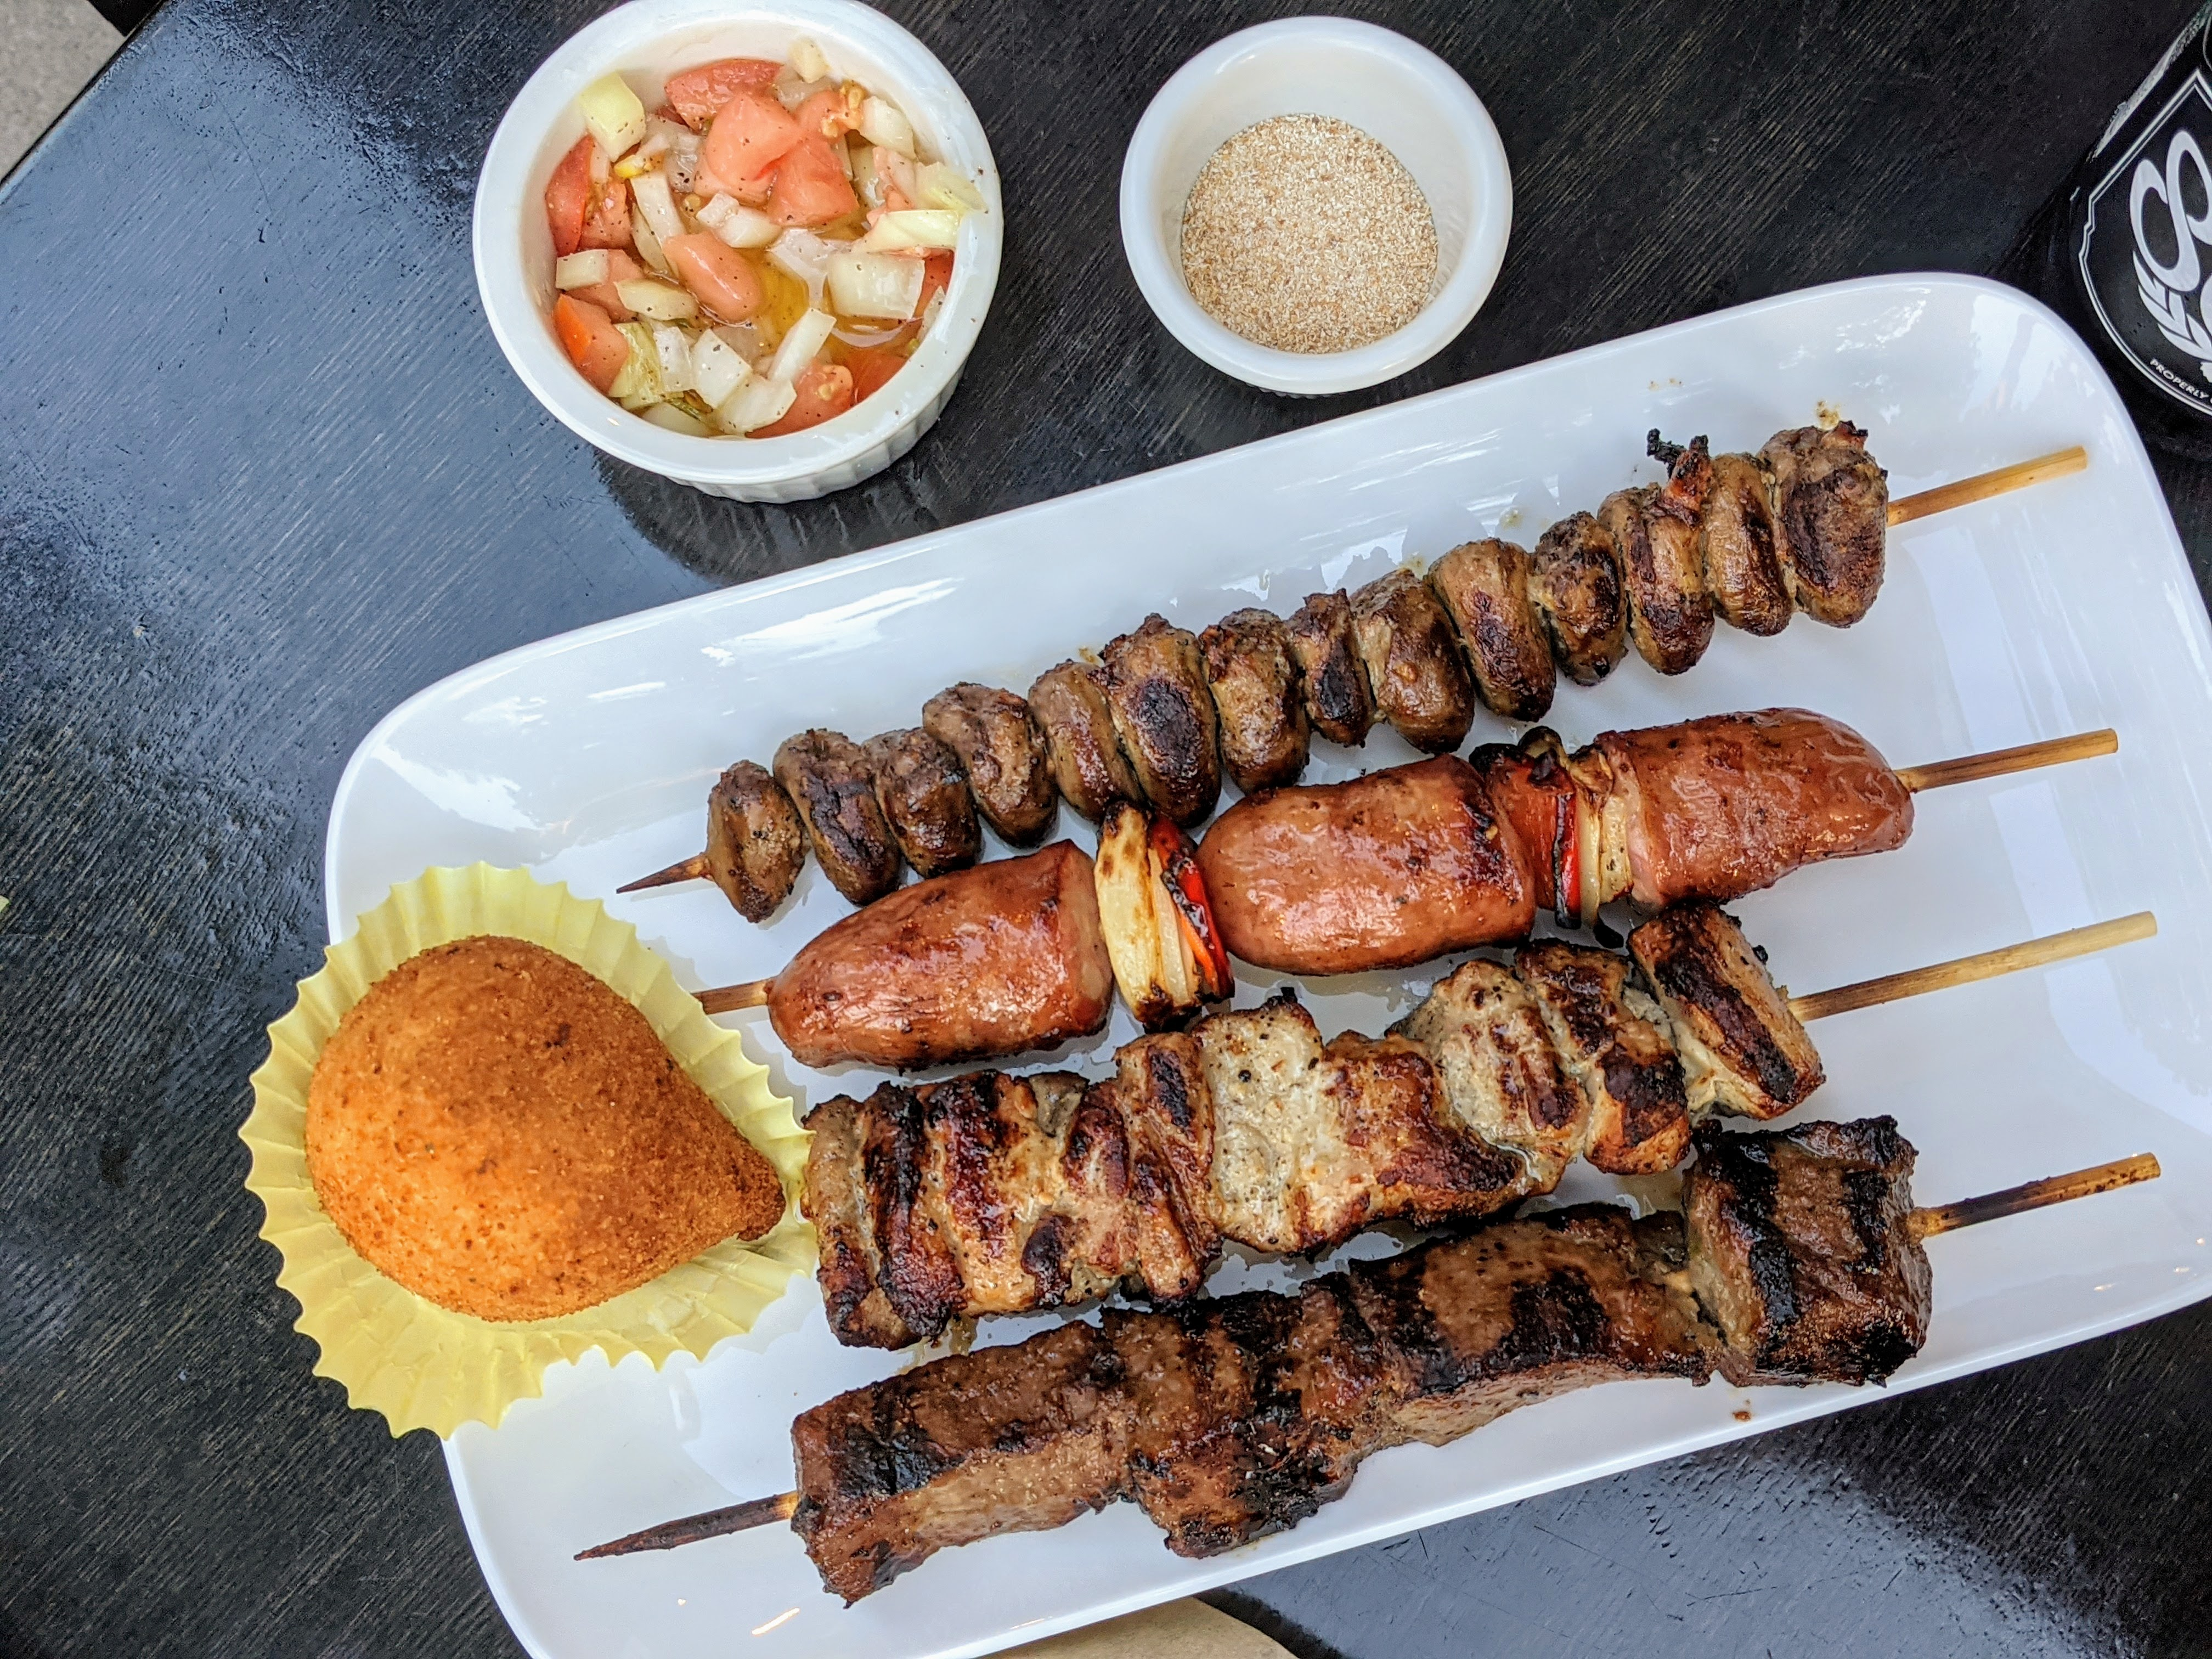 Meat skewers and coxinha from Valeu Espetos.